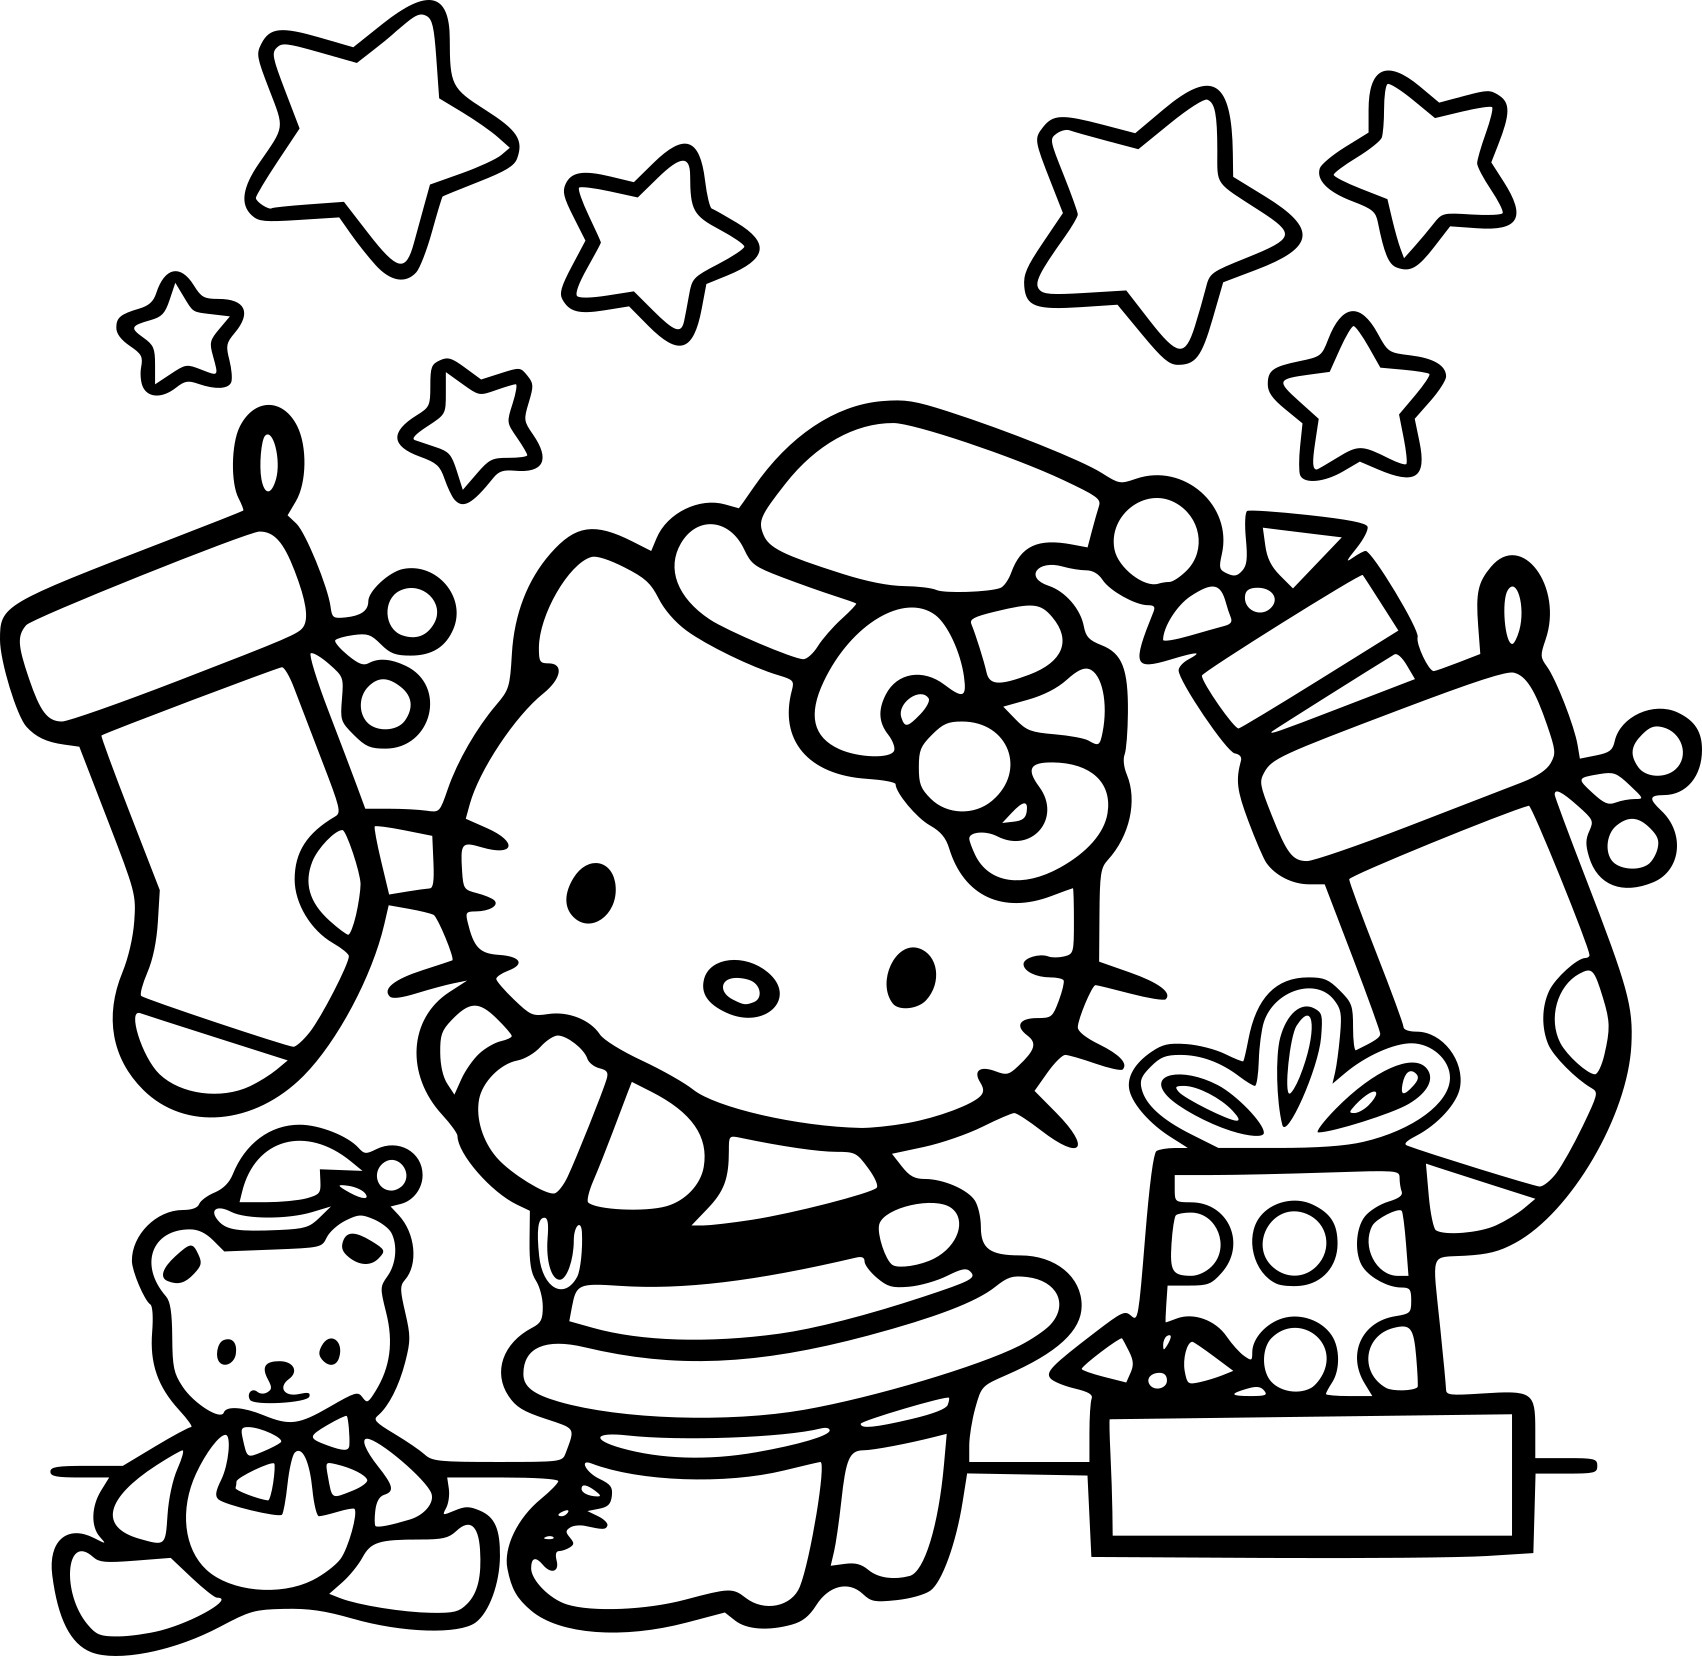 Coloriage Pere Noel Hello Kitty A Imprimer Sur Coloriages Info